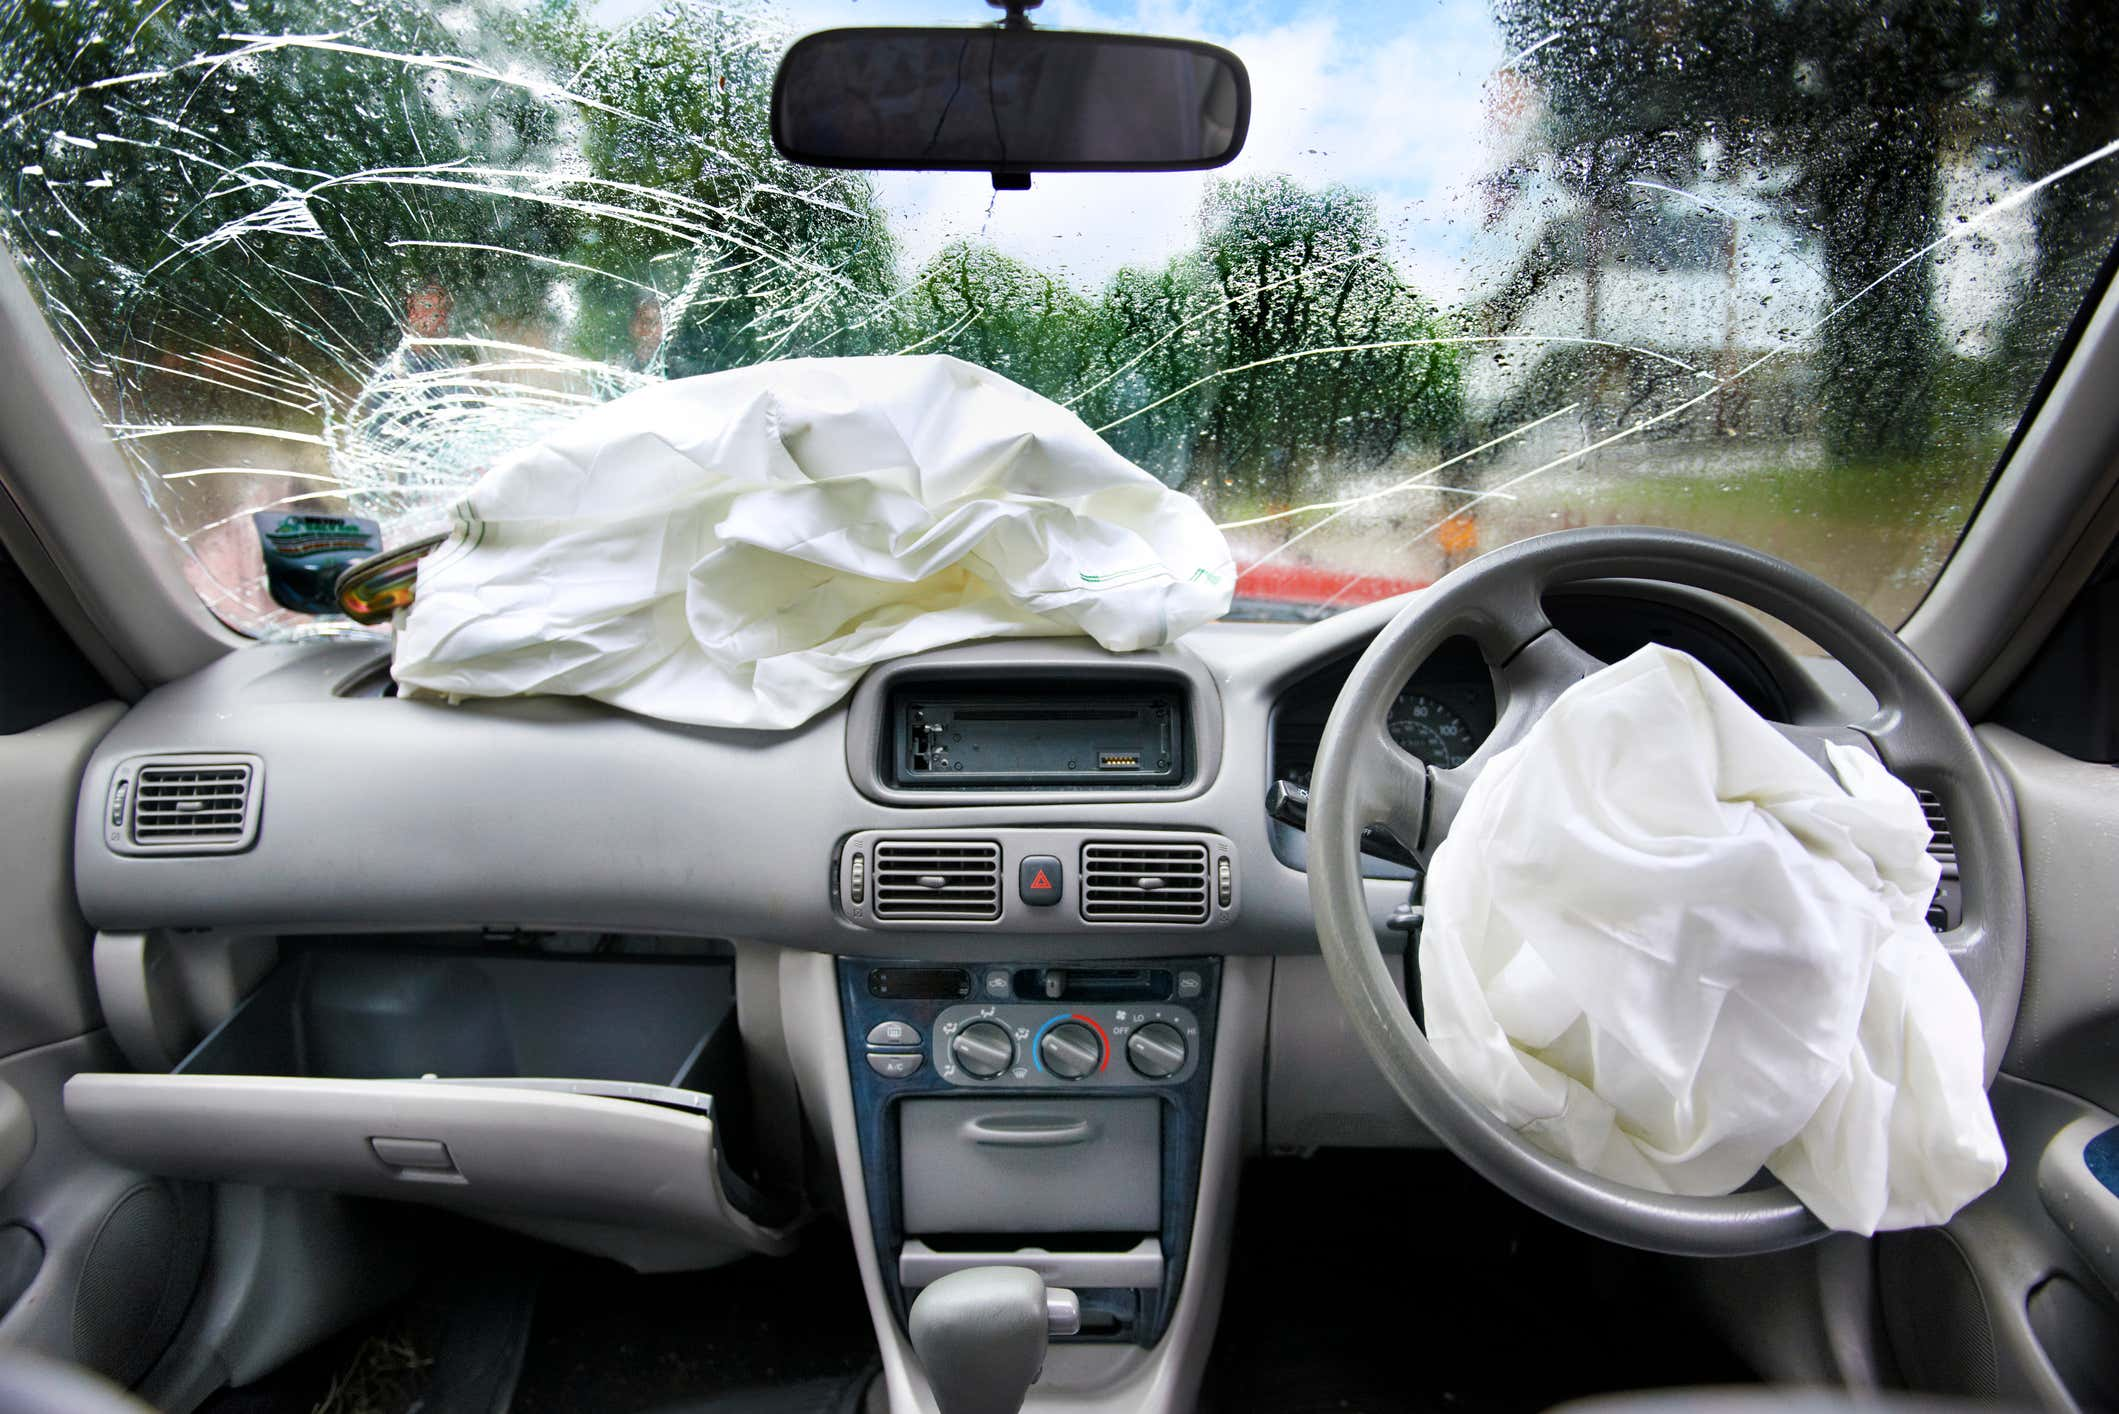 Air bags set off in a car.